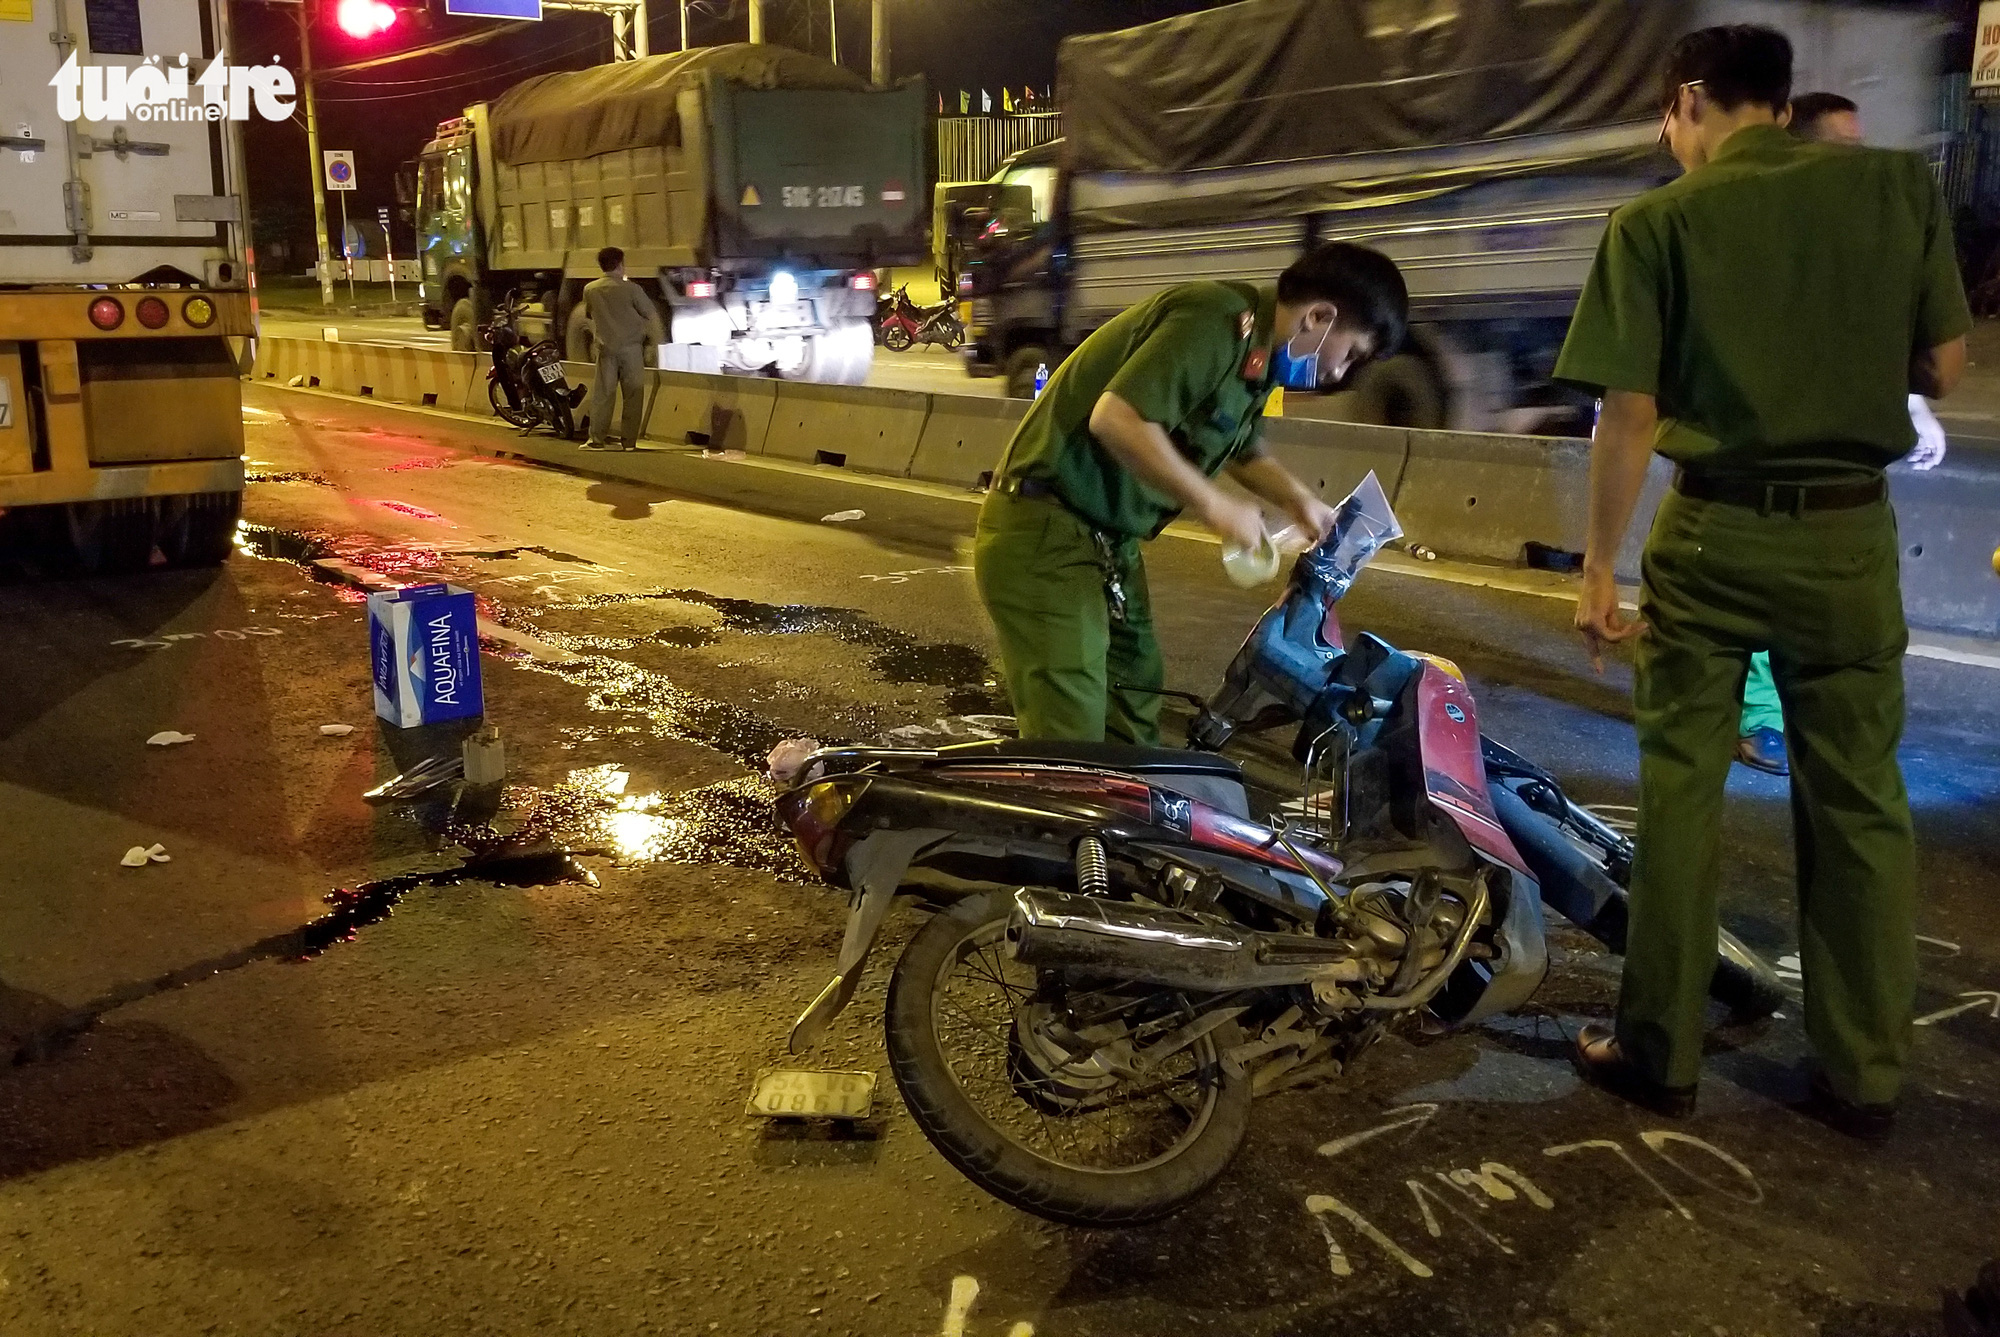 A motorbike is damaged after crashing into a trailer truck along National Highway No.1 in Thu Duc District, Ho Chi Minh City, July 12, 2020. Photo: Chau Tuan / Tuoi Tre